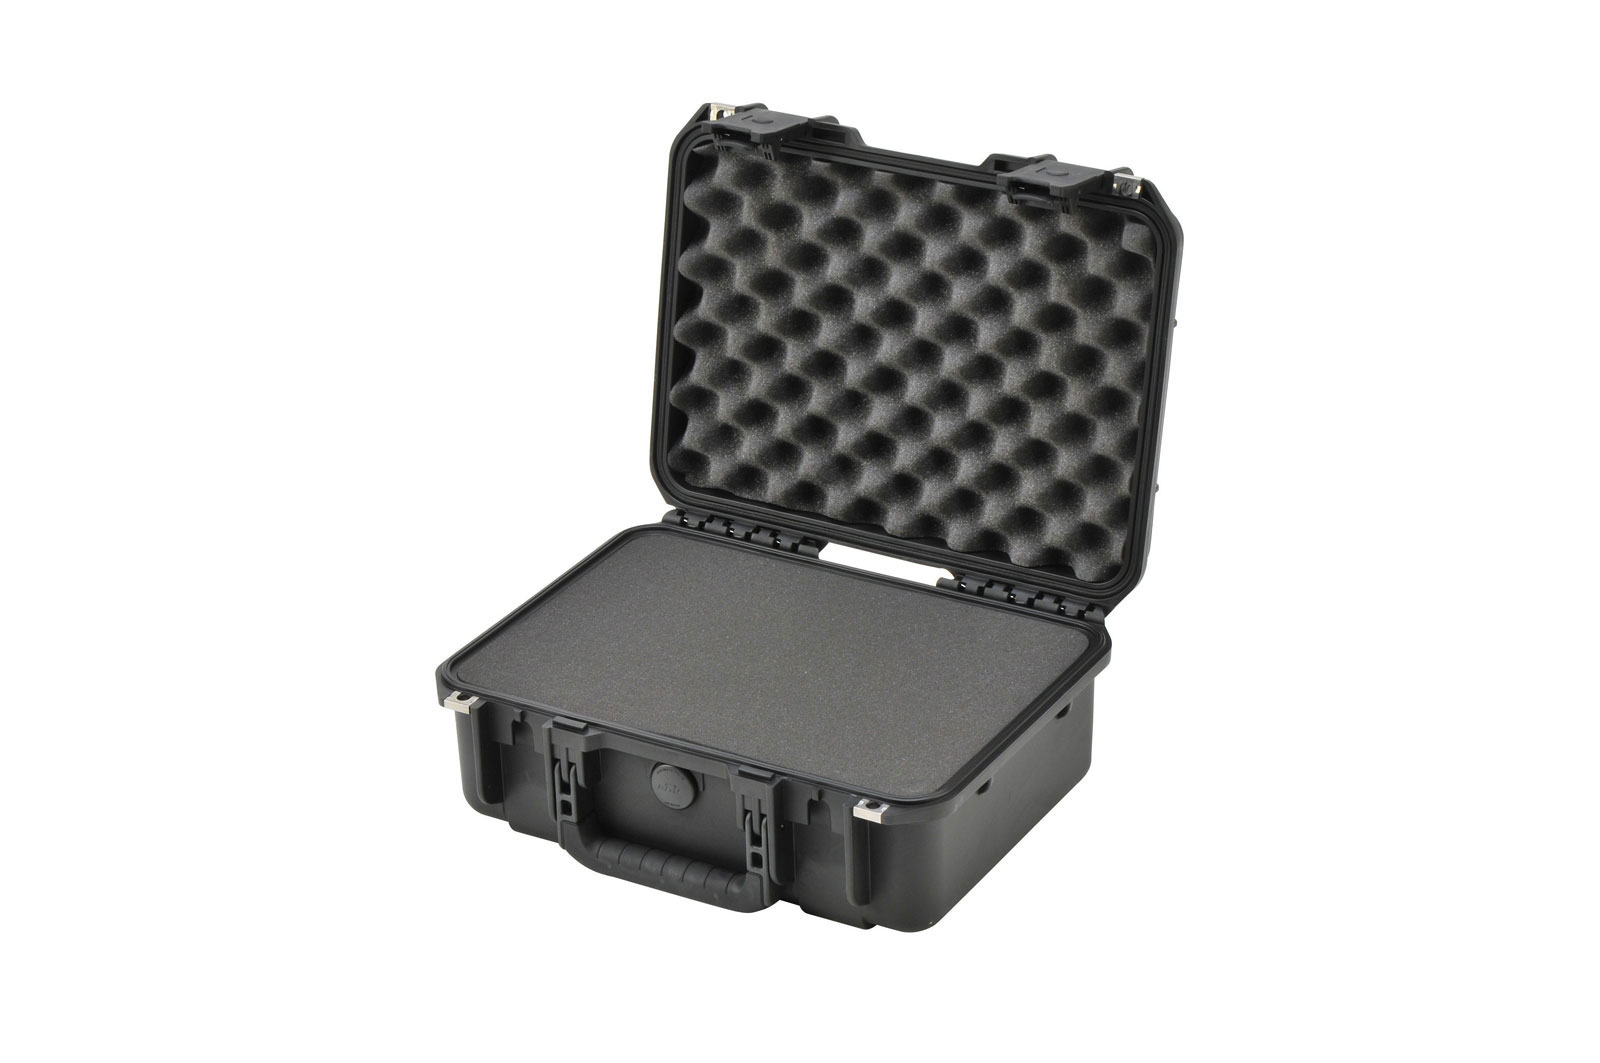 3I-1510-6B-C - UNIVERSAL WATERPROOF CASE 381 X 264 X 152 (108+44) MM WITH CUBED FOAM